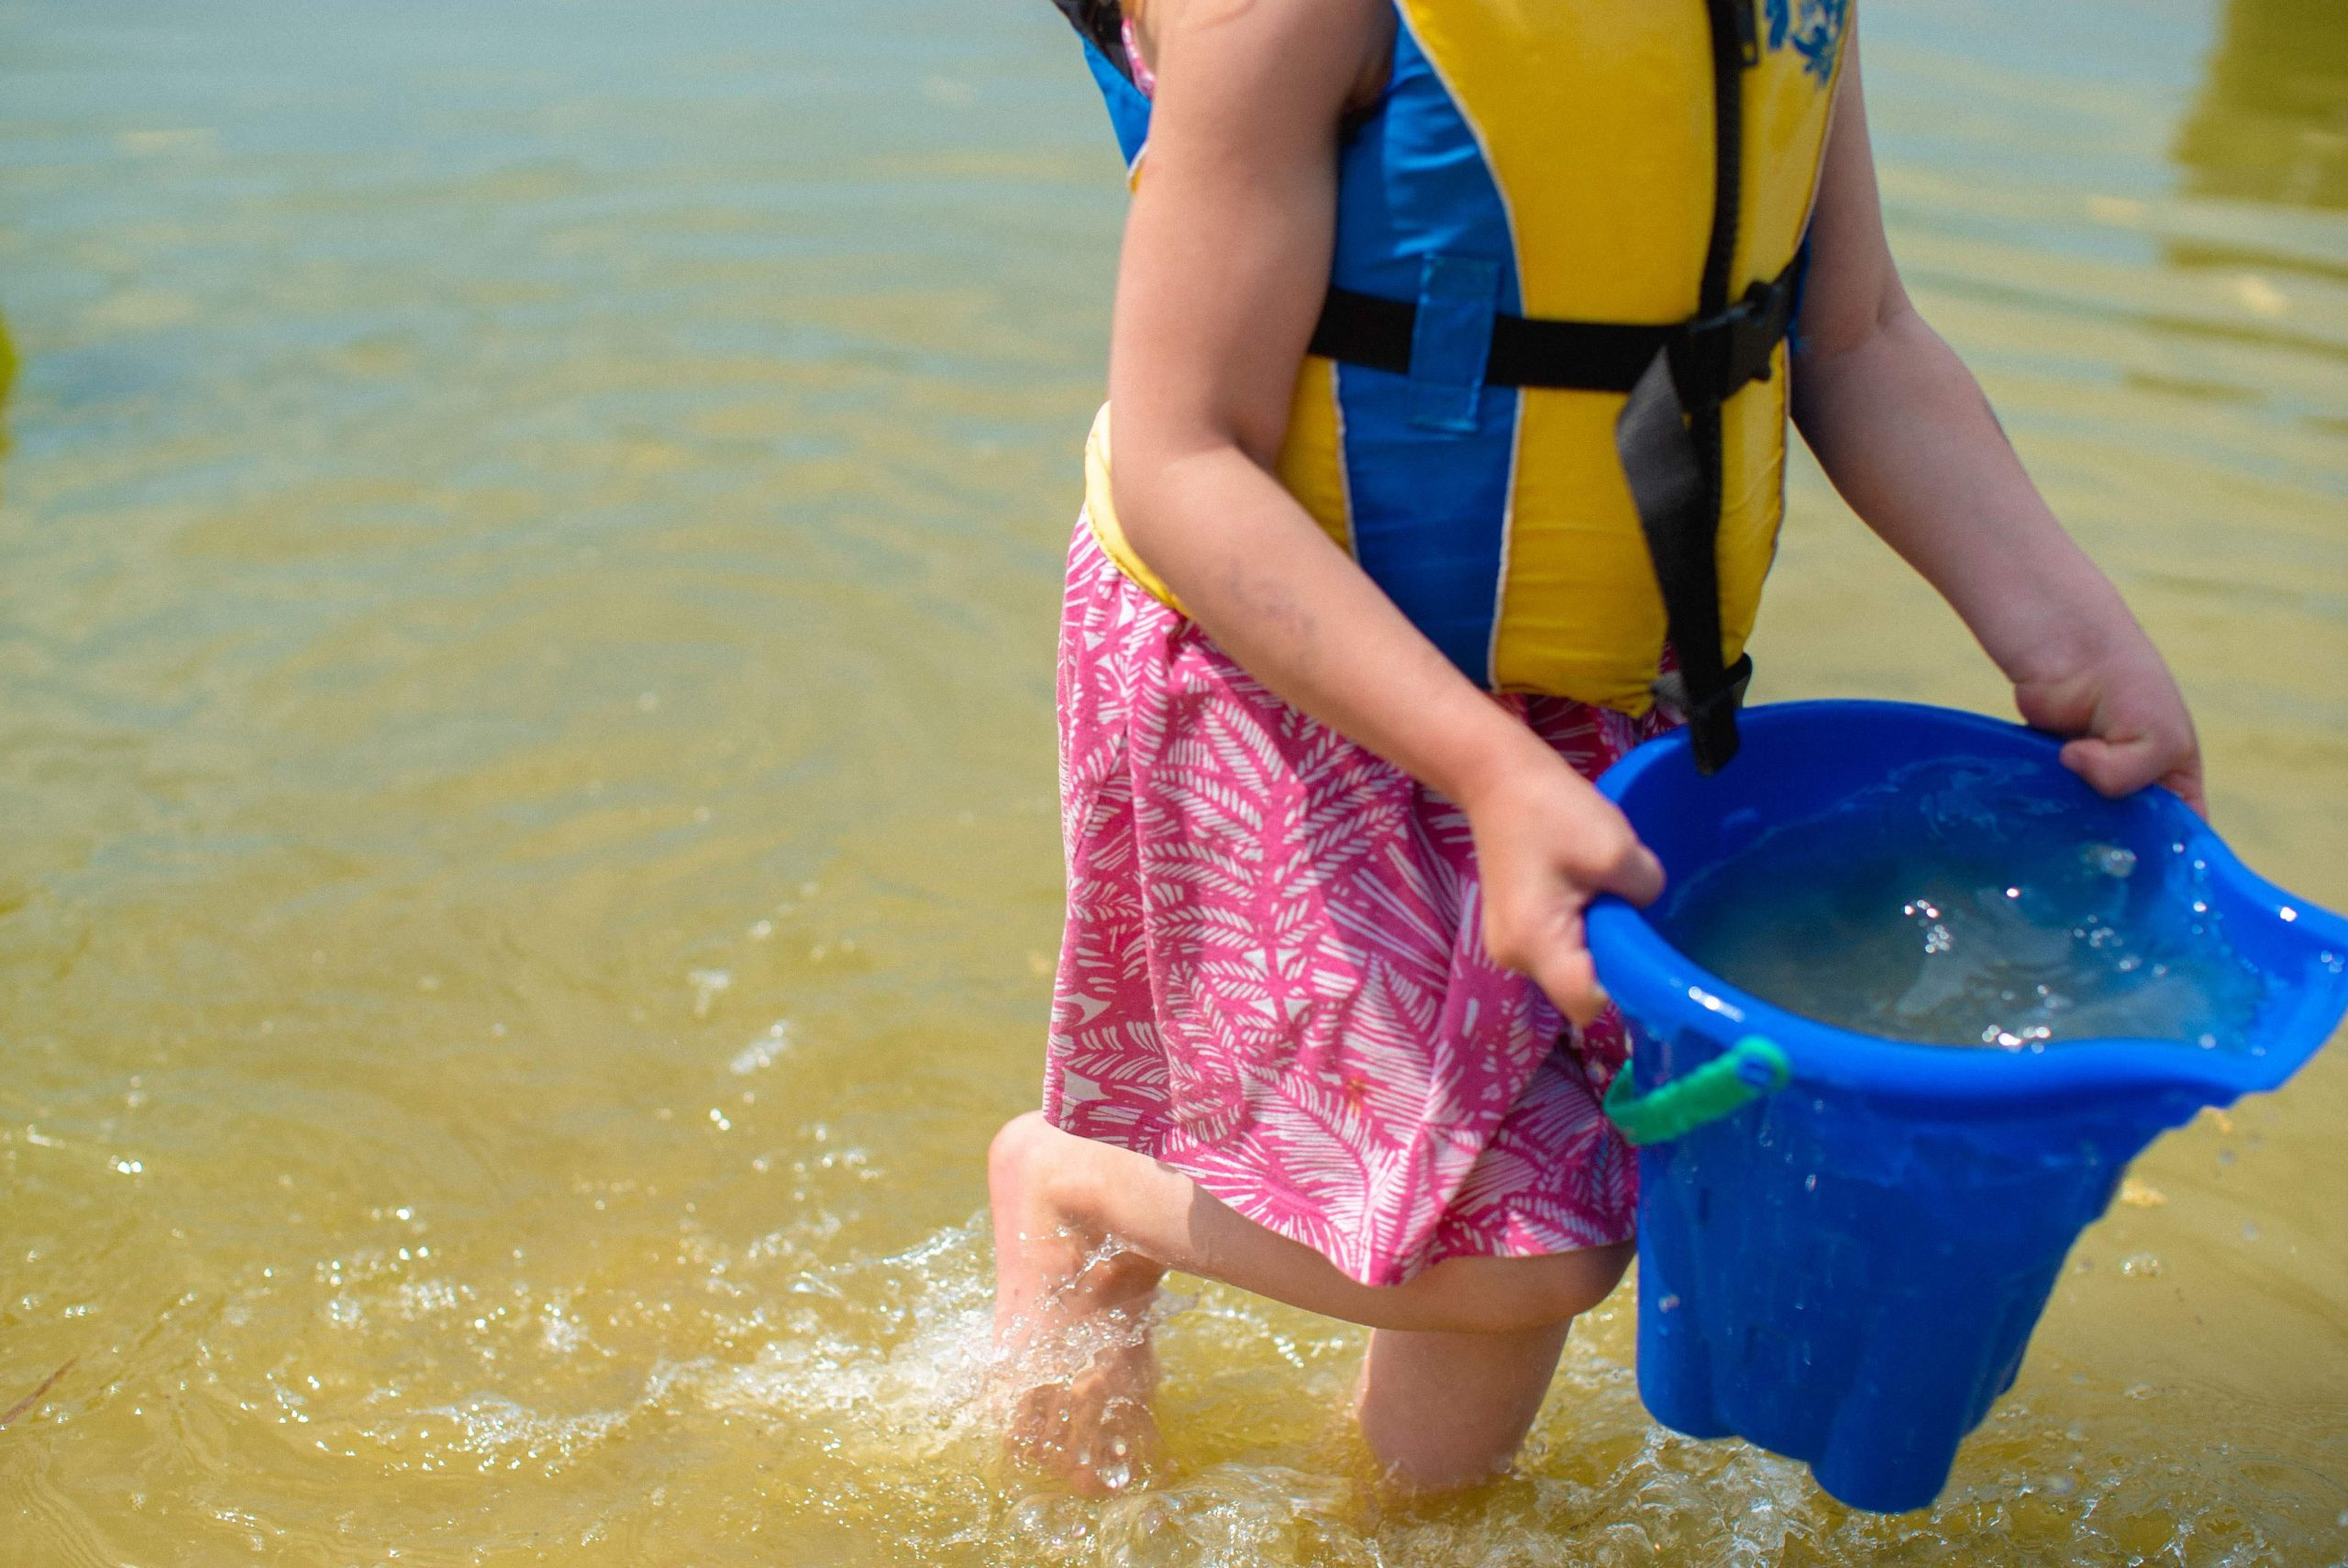 Child runs in a lake holding a blue bucket of water